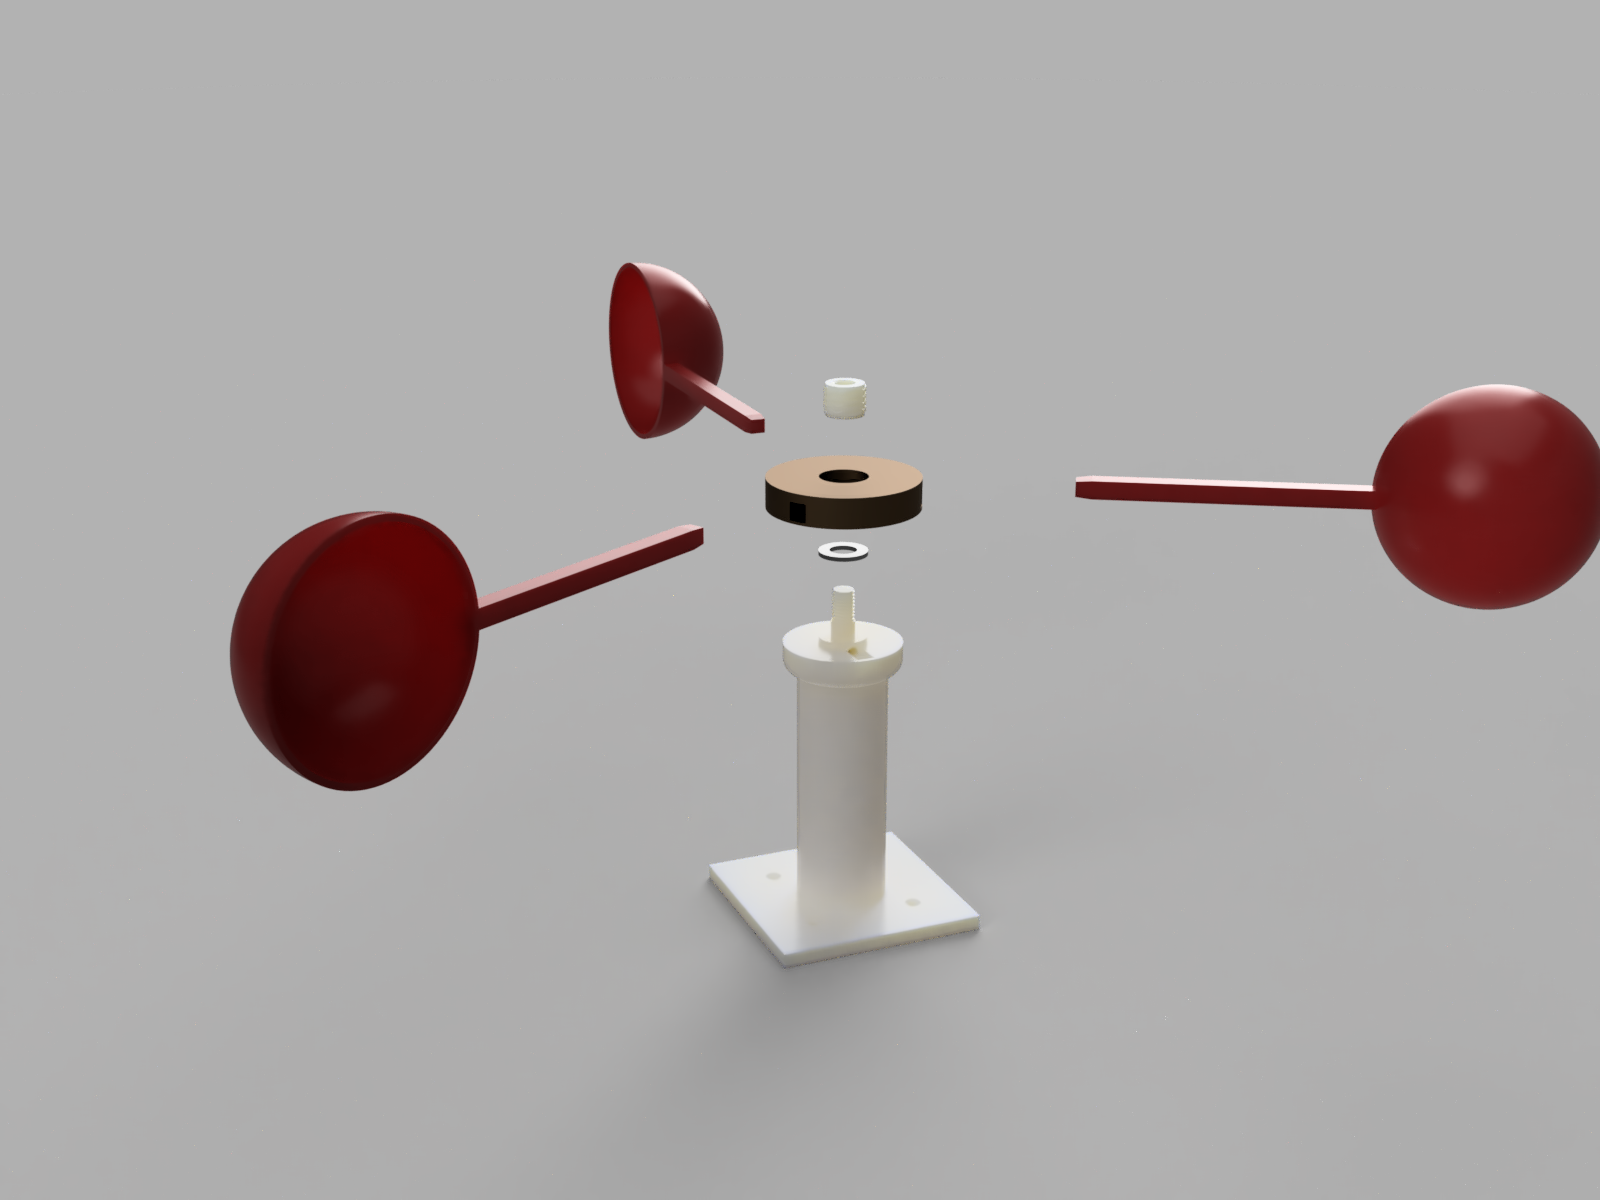 Weather_Station_Wind_Speed_2019-Mar-21_11-40-20PM-000_CustomizedView49938742620.png Download free STL file Anemometer w/ Hall Effect Sensor • Object to 3D print, SeanTheITGuy